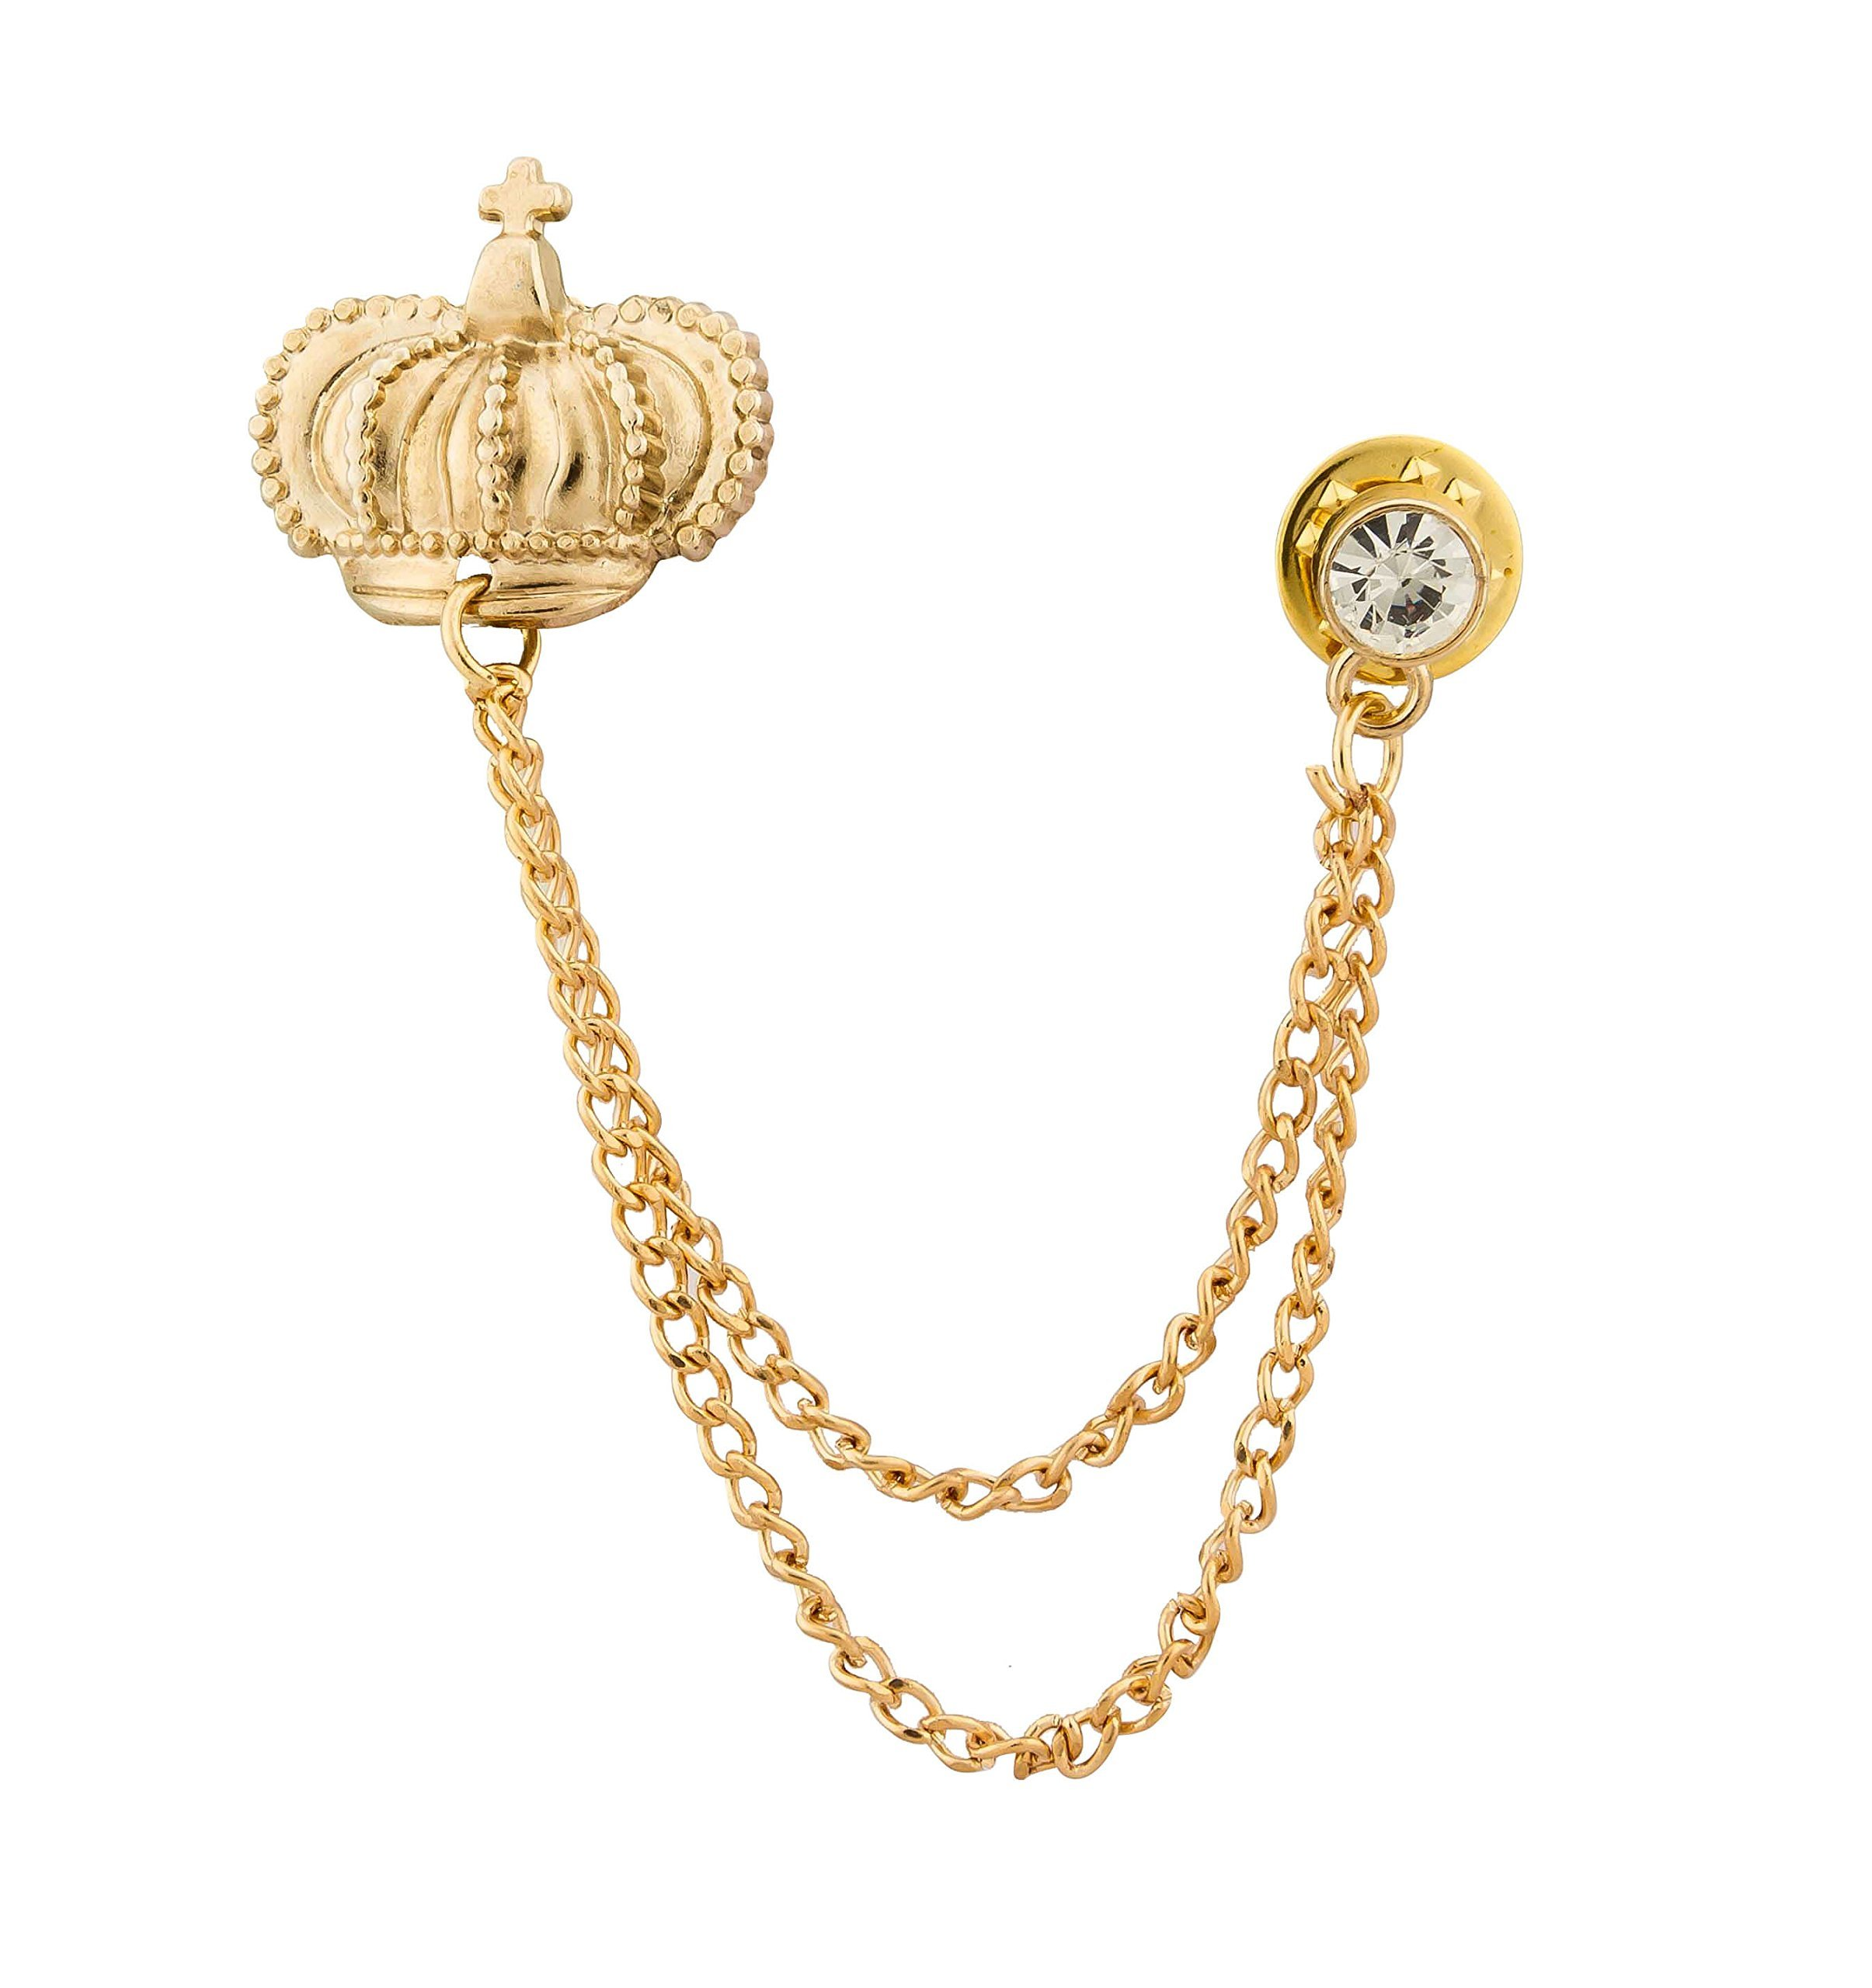 KNIGHTHOOD Men's Crown And Swarovski Lapel Pin/Collar Pin Shirt Stud Brooch (New Collection) Golden